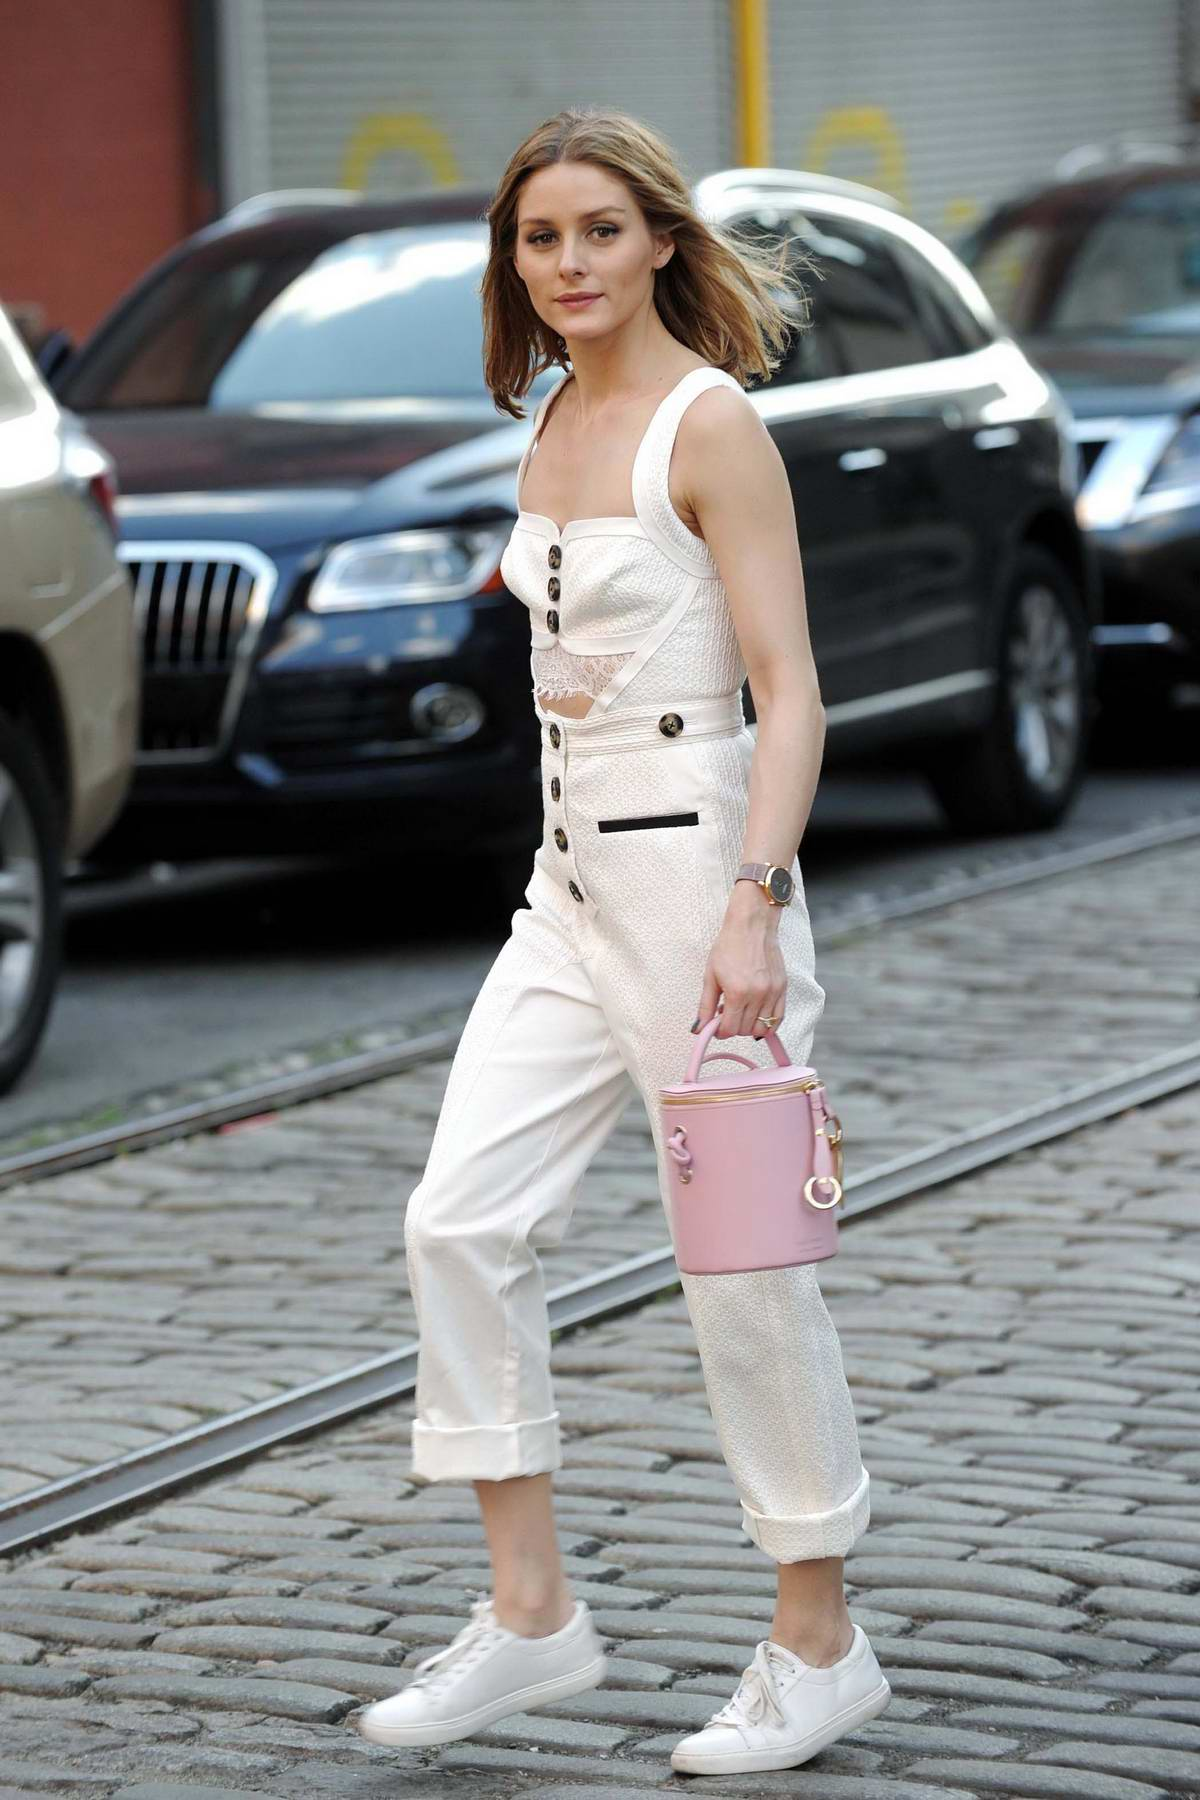 Olivia Palermo taking her dog out for a walk in Brooklyn, New York